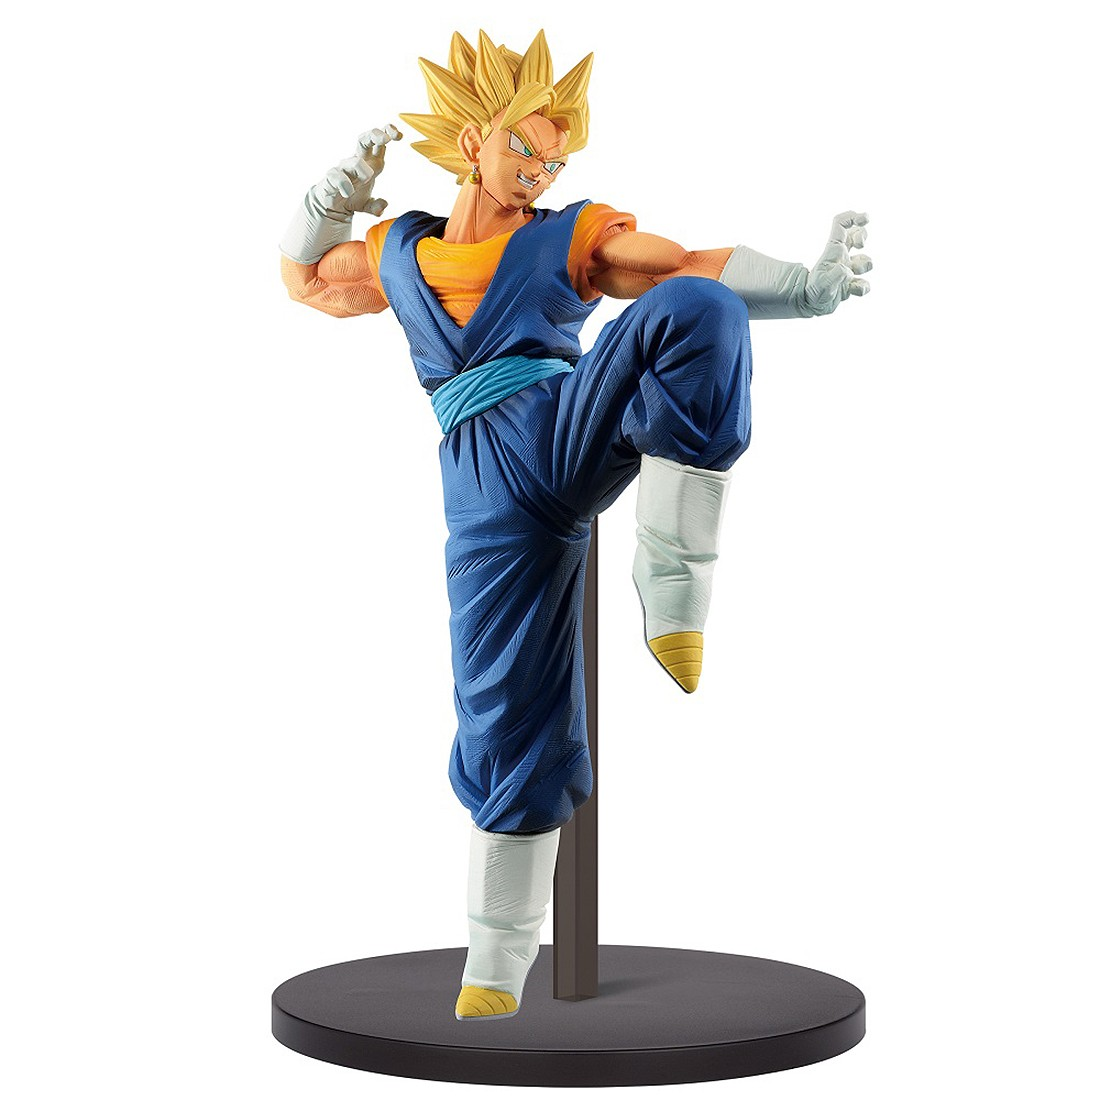 PREORDER - Banpresto Dragon Ball Super Son Goku Fes!! Vol 11 Super Saiyan Vegito Figure (blue)